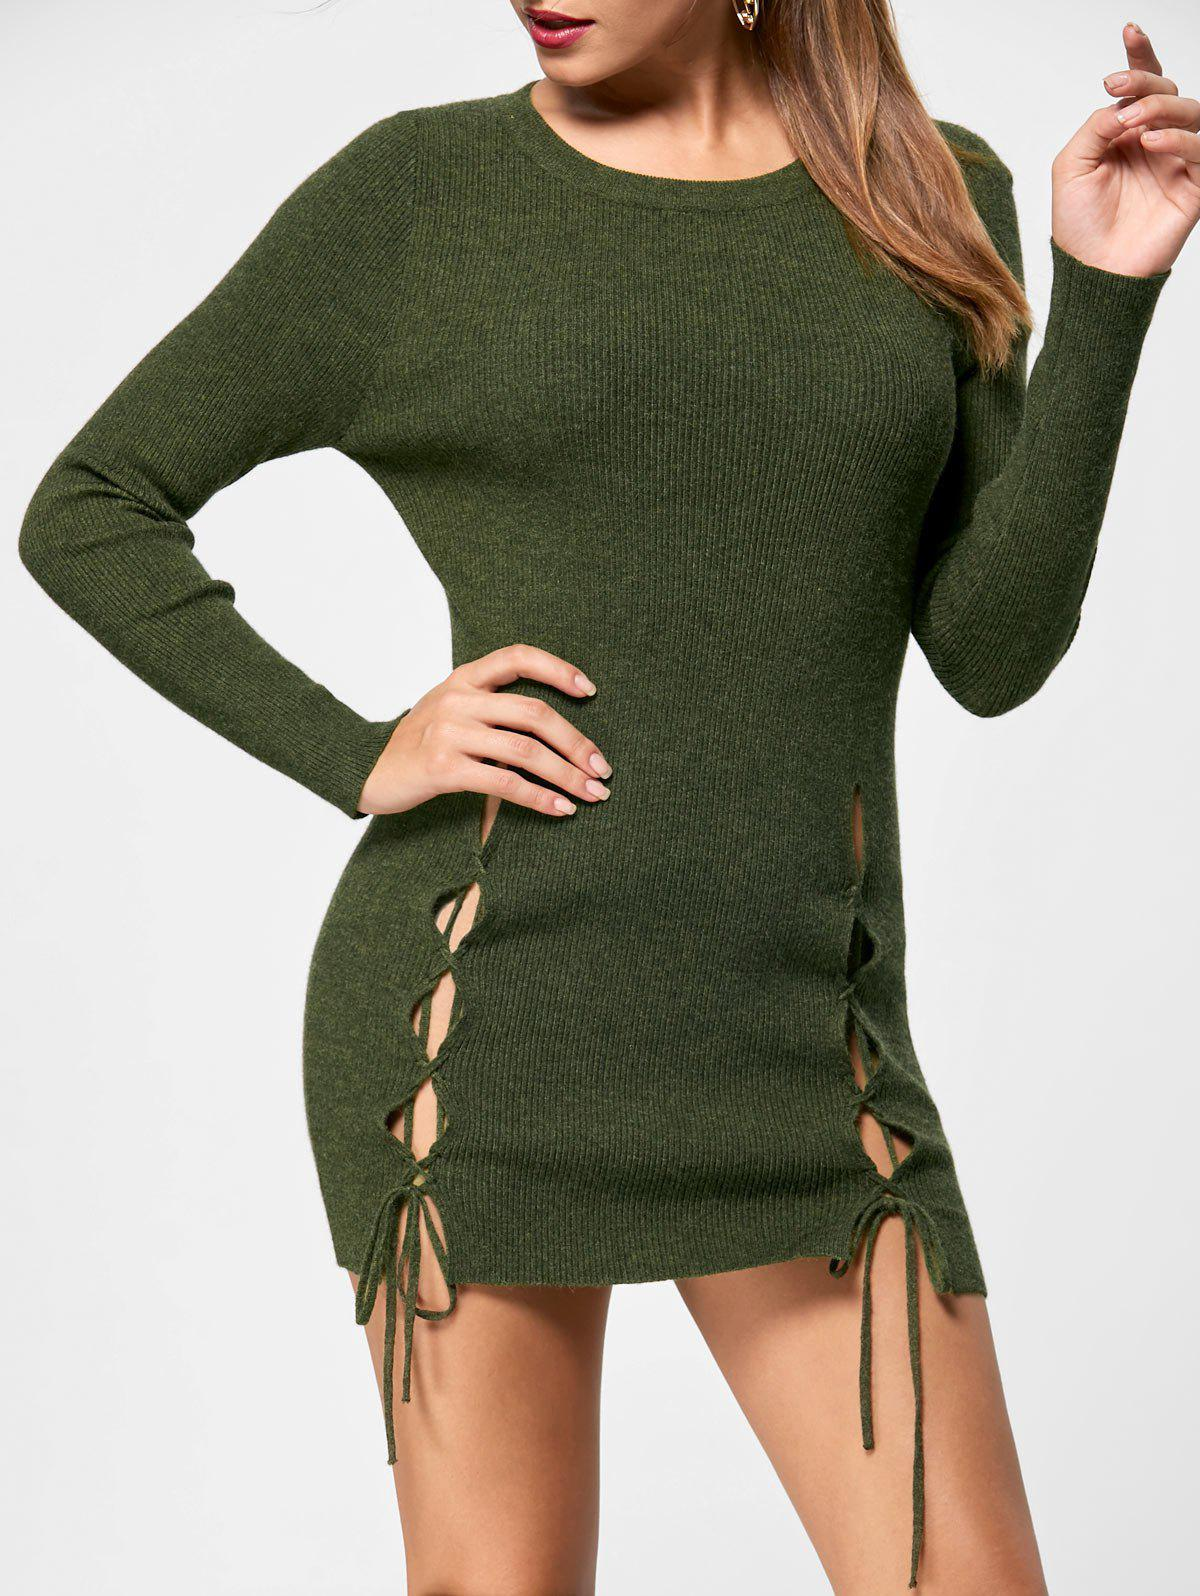 Hot Short Lace Up Jumper Dress